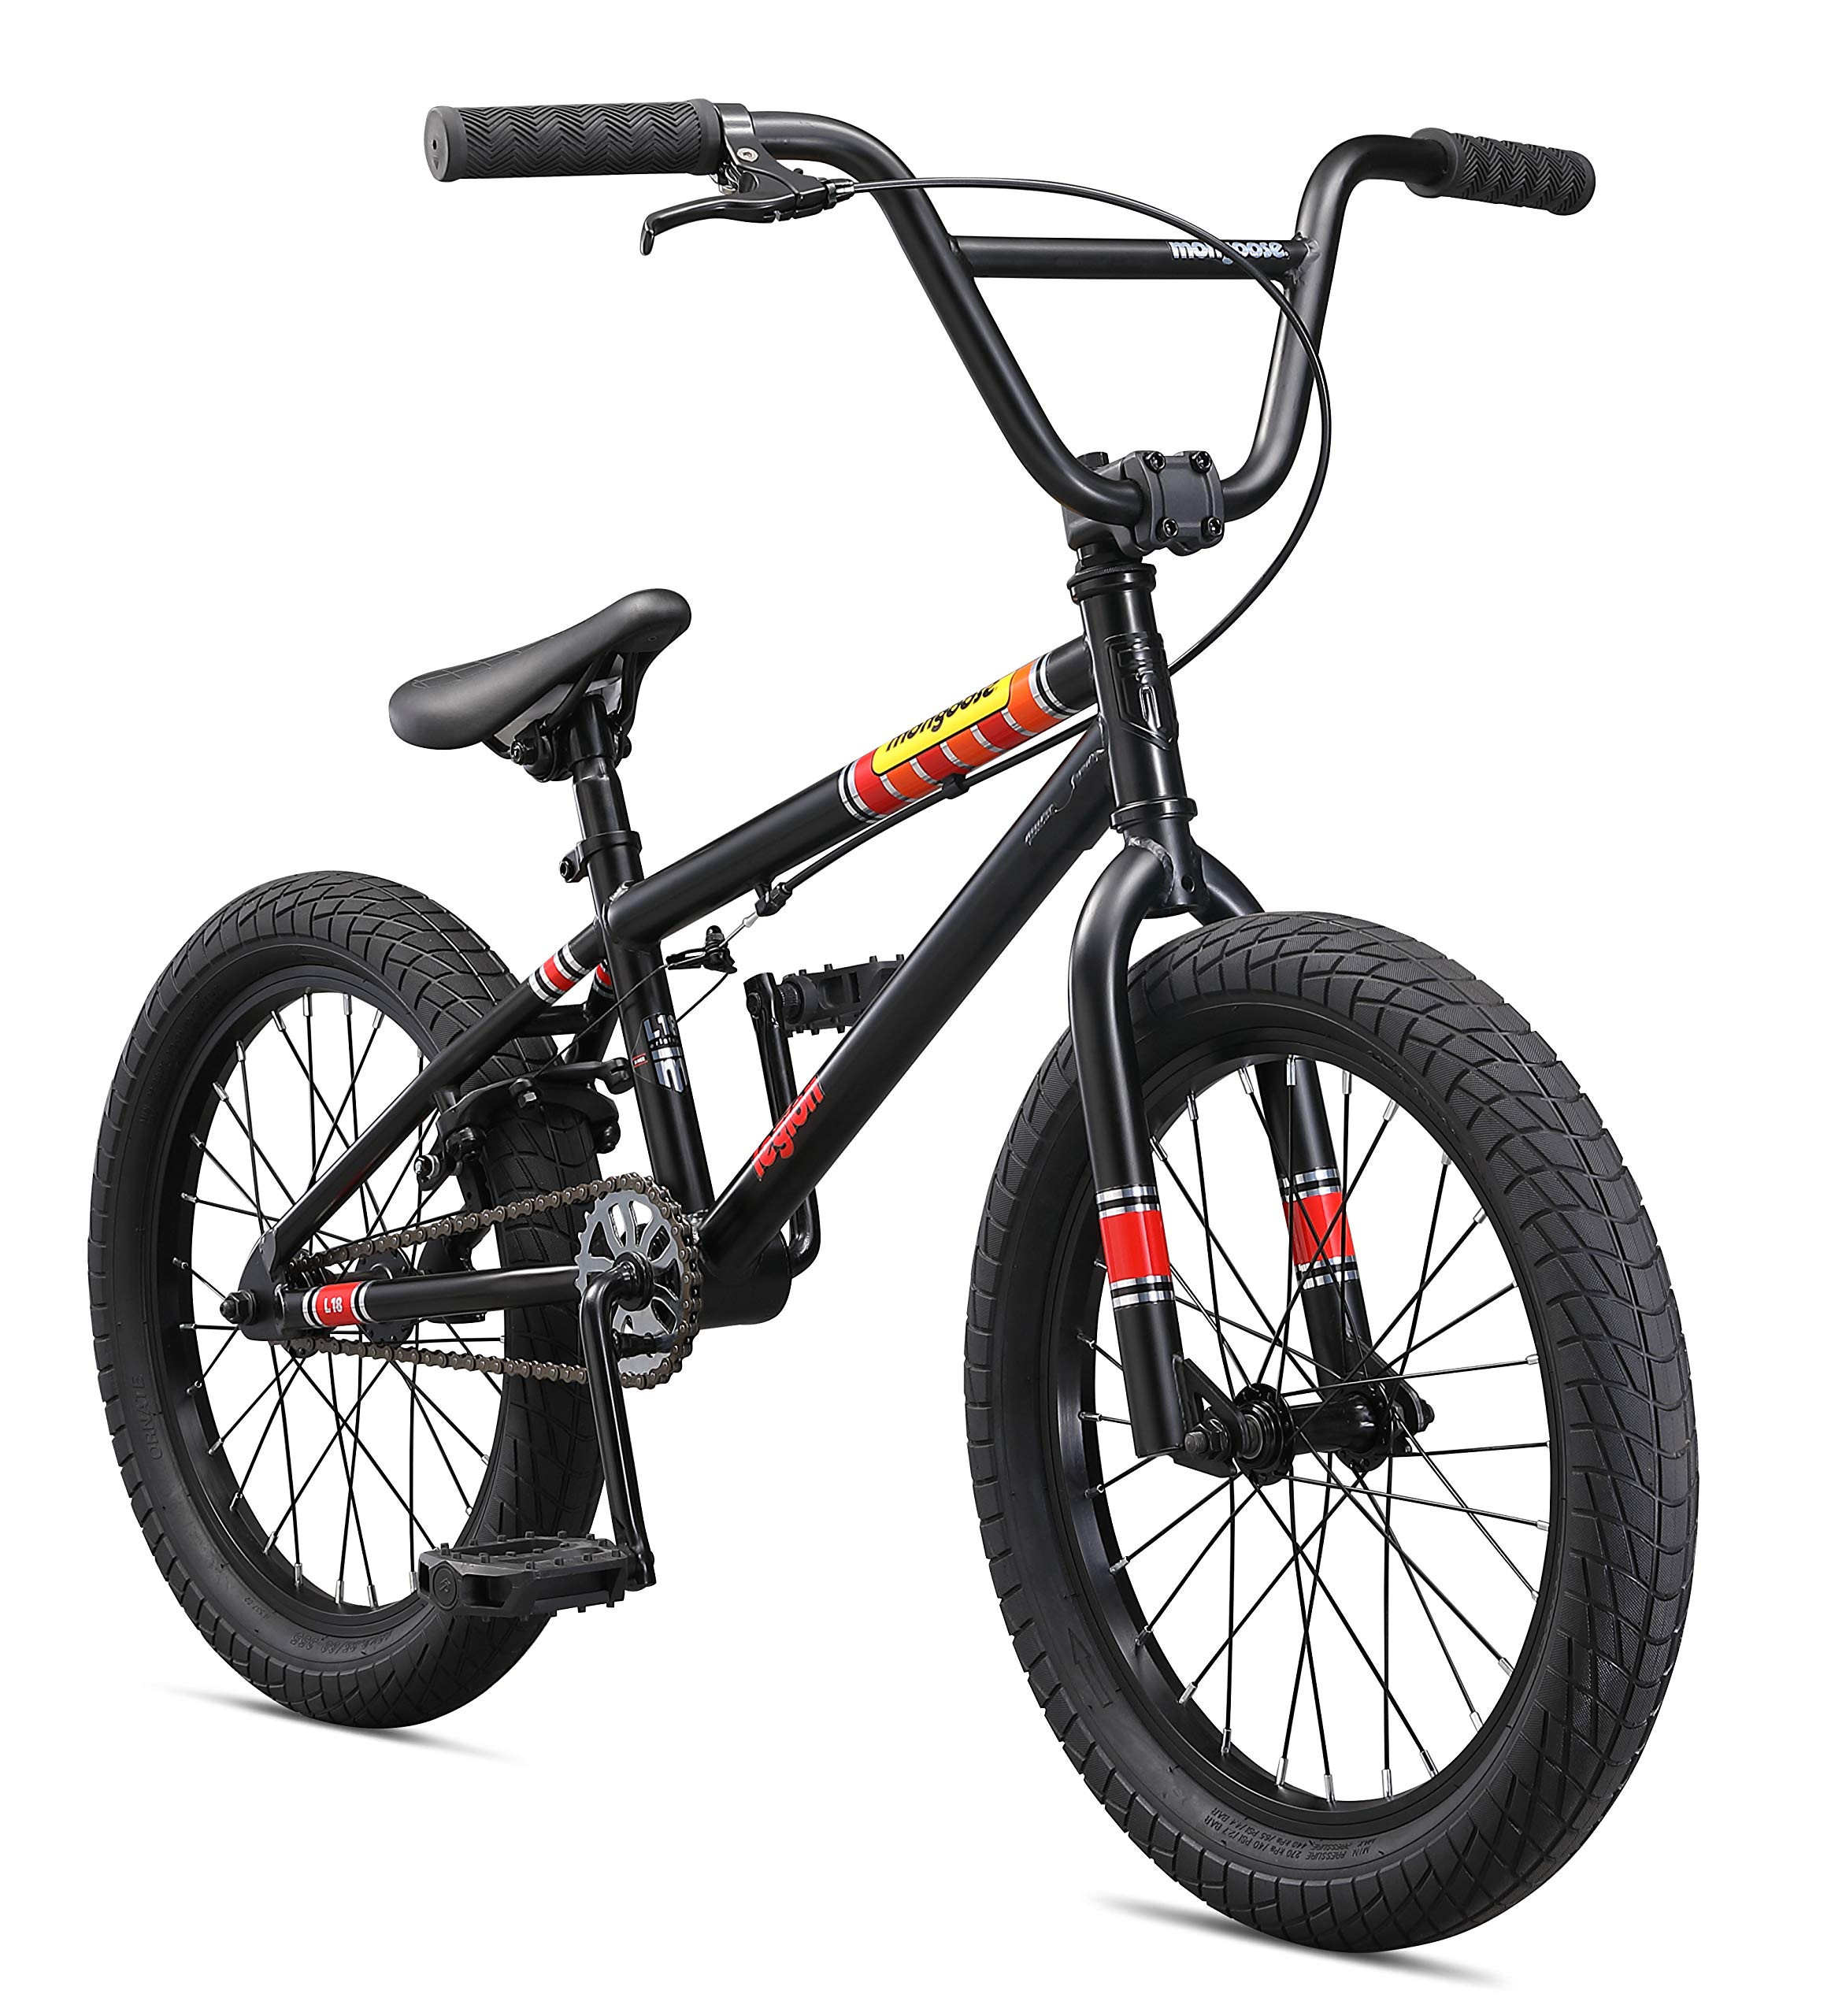 Mongoose Legion L18 Freestyle BMX Bike for Kids, Featuring Hi-Ten Steel Frame and Micro Drive 25x9T BMX Gearing with 18-Inch Wheels, Black